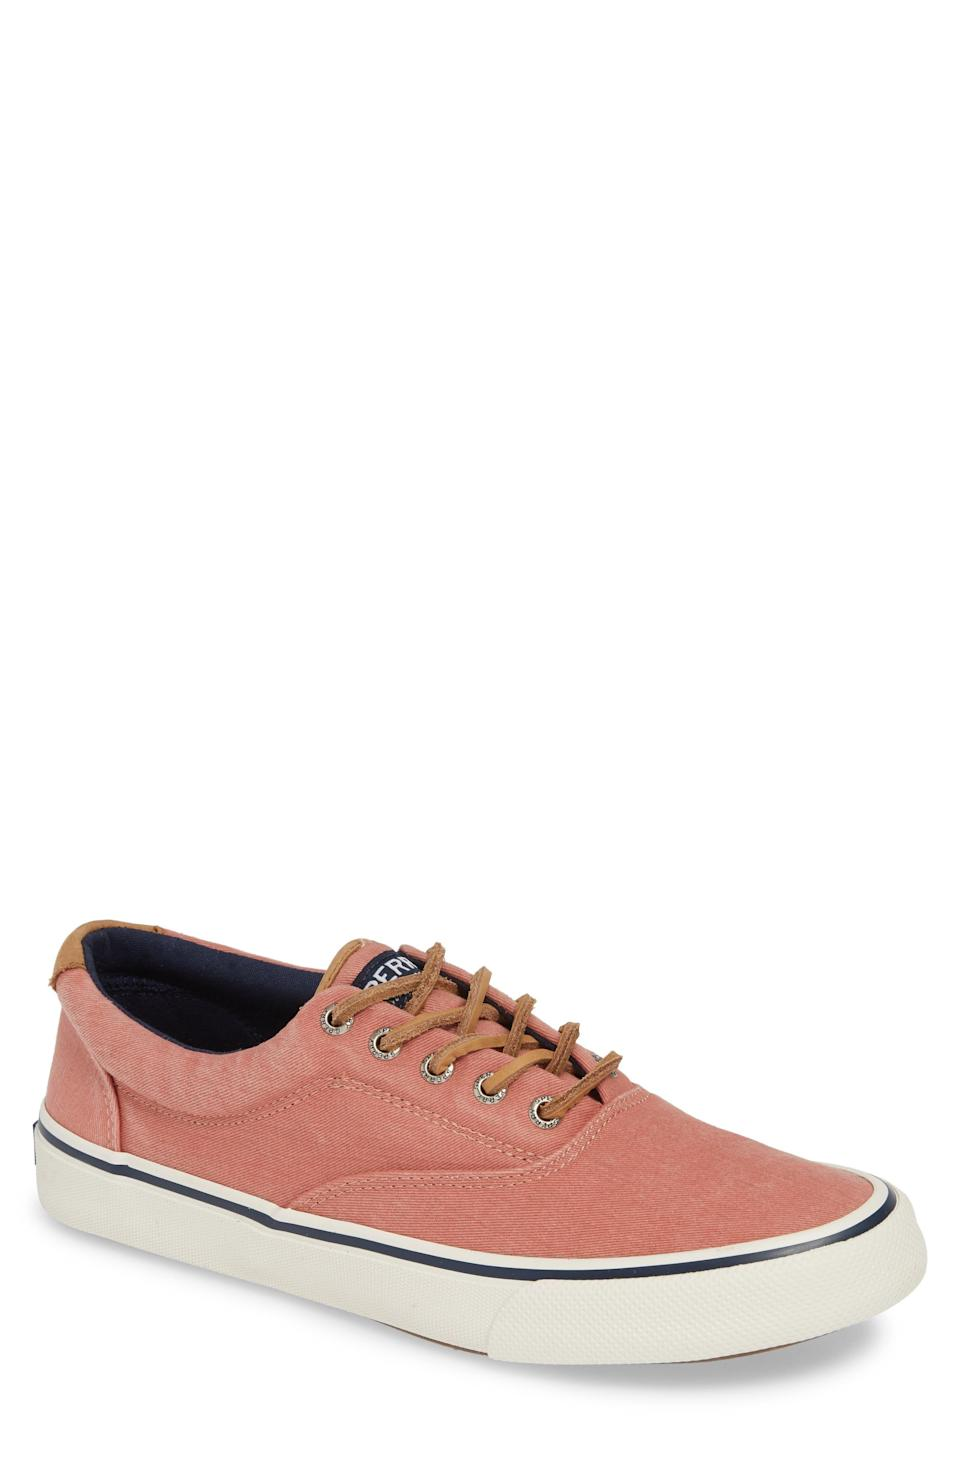 """<p><strong>SPERRY</strong></p><p>nordstrom.com</p><p><strong>$59.95</strong></p><p><a href=""""https://go.redirectingat.com?id=74968X1596630&url=https%3A%2F%2Fshop.nordstrom.com%2Fs%2Fsperry-striper-ii-cvo-oxford-sneaker-men%2F5093980&sref=https%3A%2F%2Fwww.menshealth.com%2Fstyle%2Fg37081969%2Fnordstroms-anniversary-sale-best-sneakers%2F"""" rel=""""nofollow noopener"""" target=""""_blank"""" data-ylk=""""slk:BUY IT HERE"""" class=""""link rapid-noclick-resp"""">BUY IT HERE</a></p><p><del>$60</del><strong><br>$39.90</strong> </p><p>A pop of color never hurt anyone, right? Right. These easy lace-up sneakers are the perfect piece to round out the rest of your wardrobe for the remainder of the summer season.</p>"""